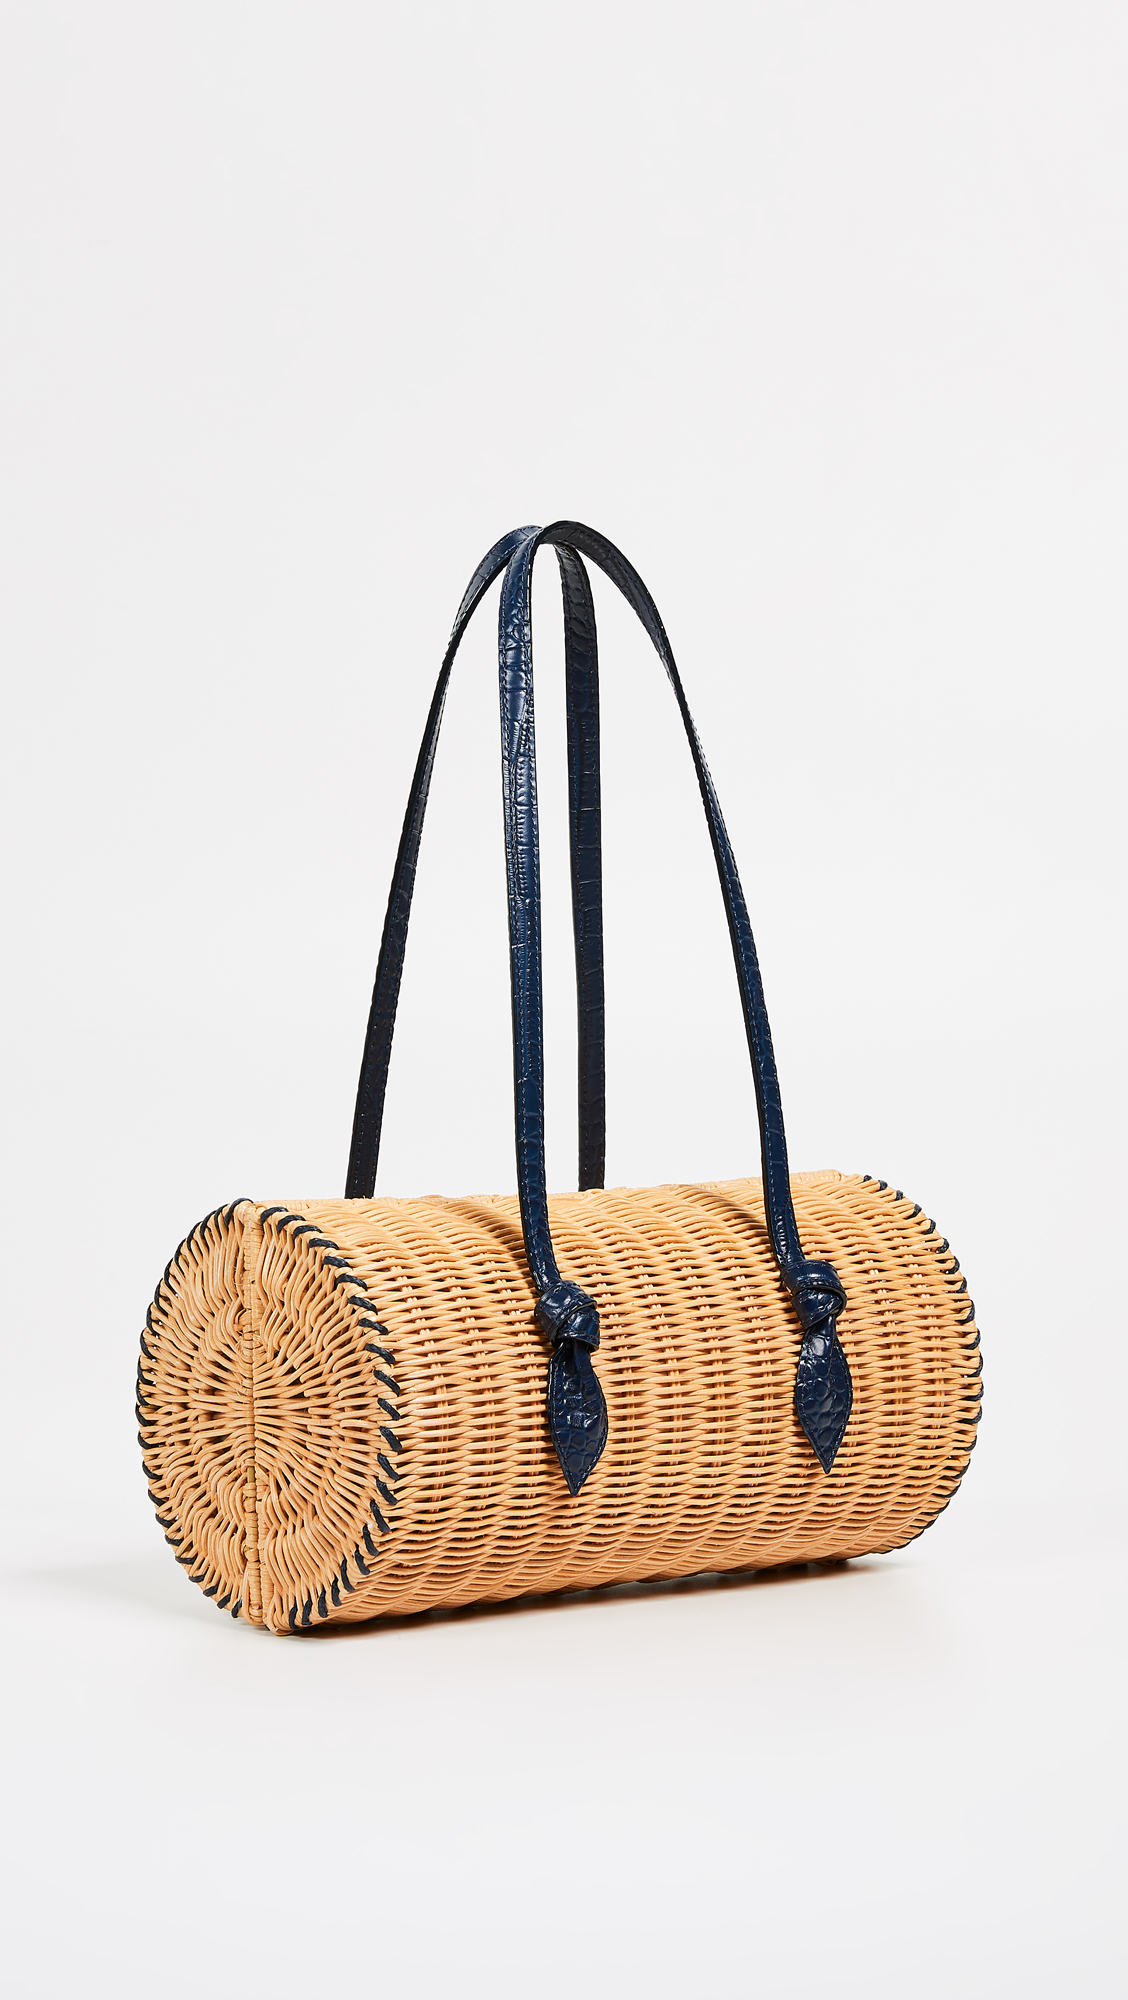 Straw Bag with Leather Handles